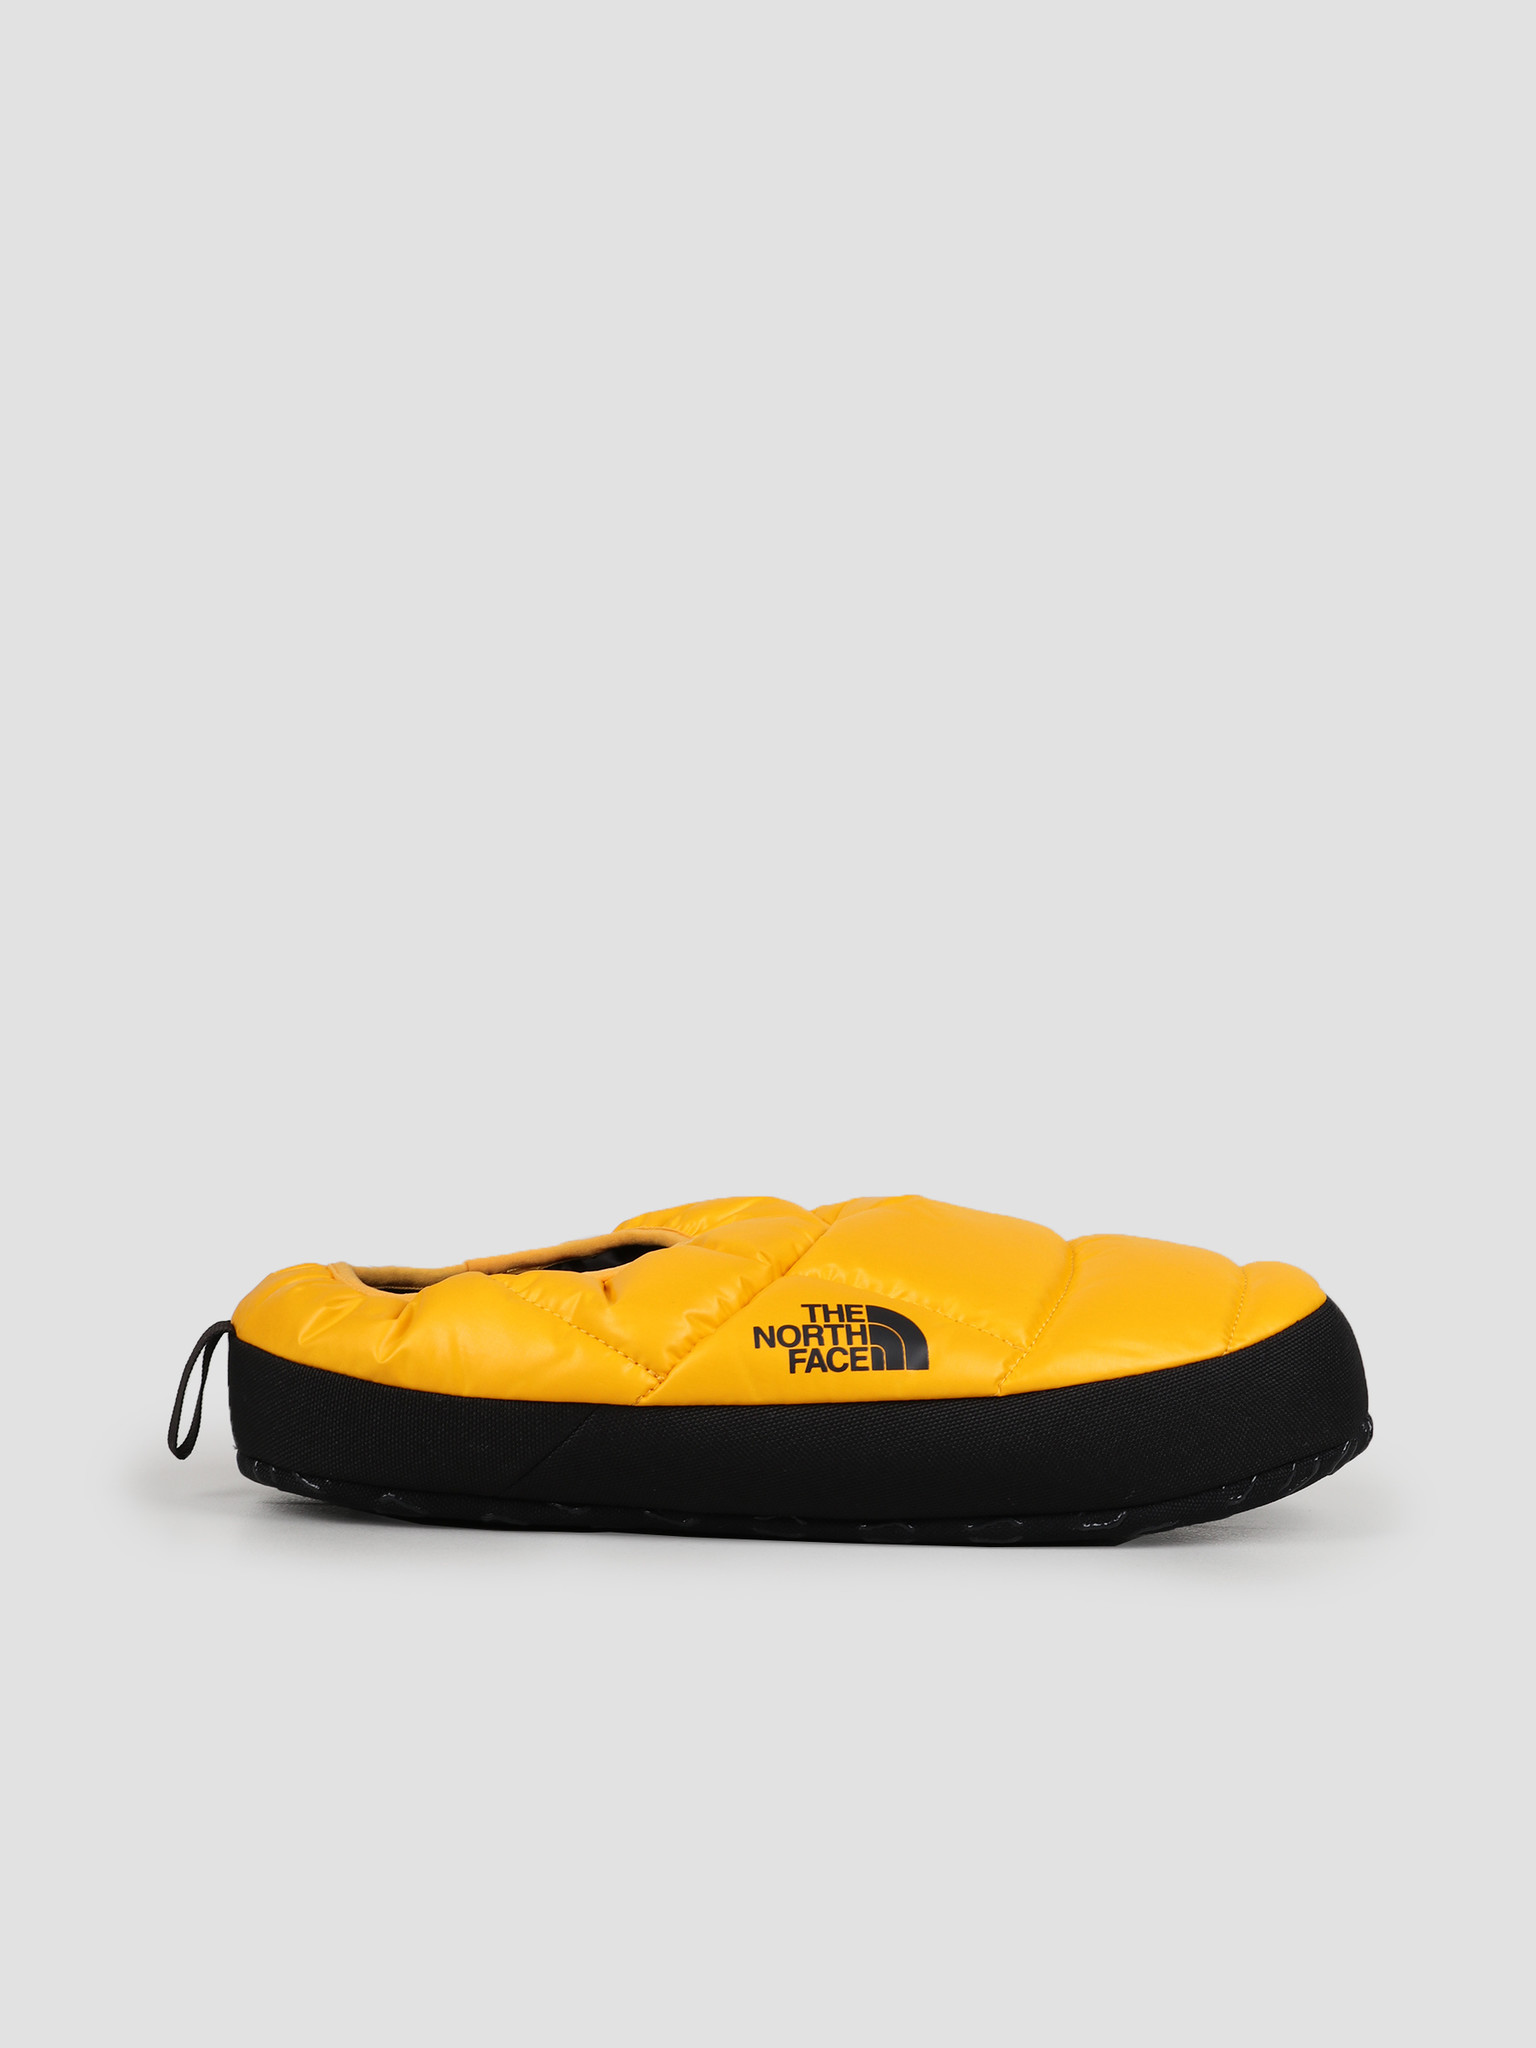 The North Face The North Face NSE Tent Mule III Yellow Black T0AWMGLR0